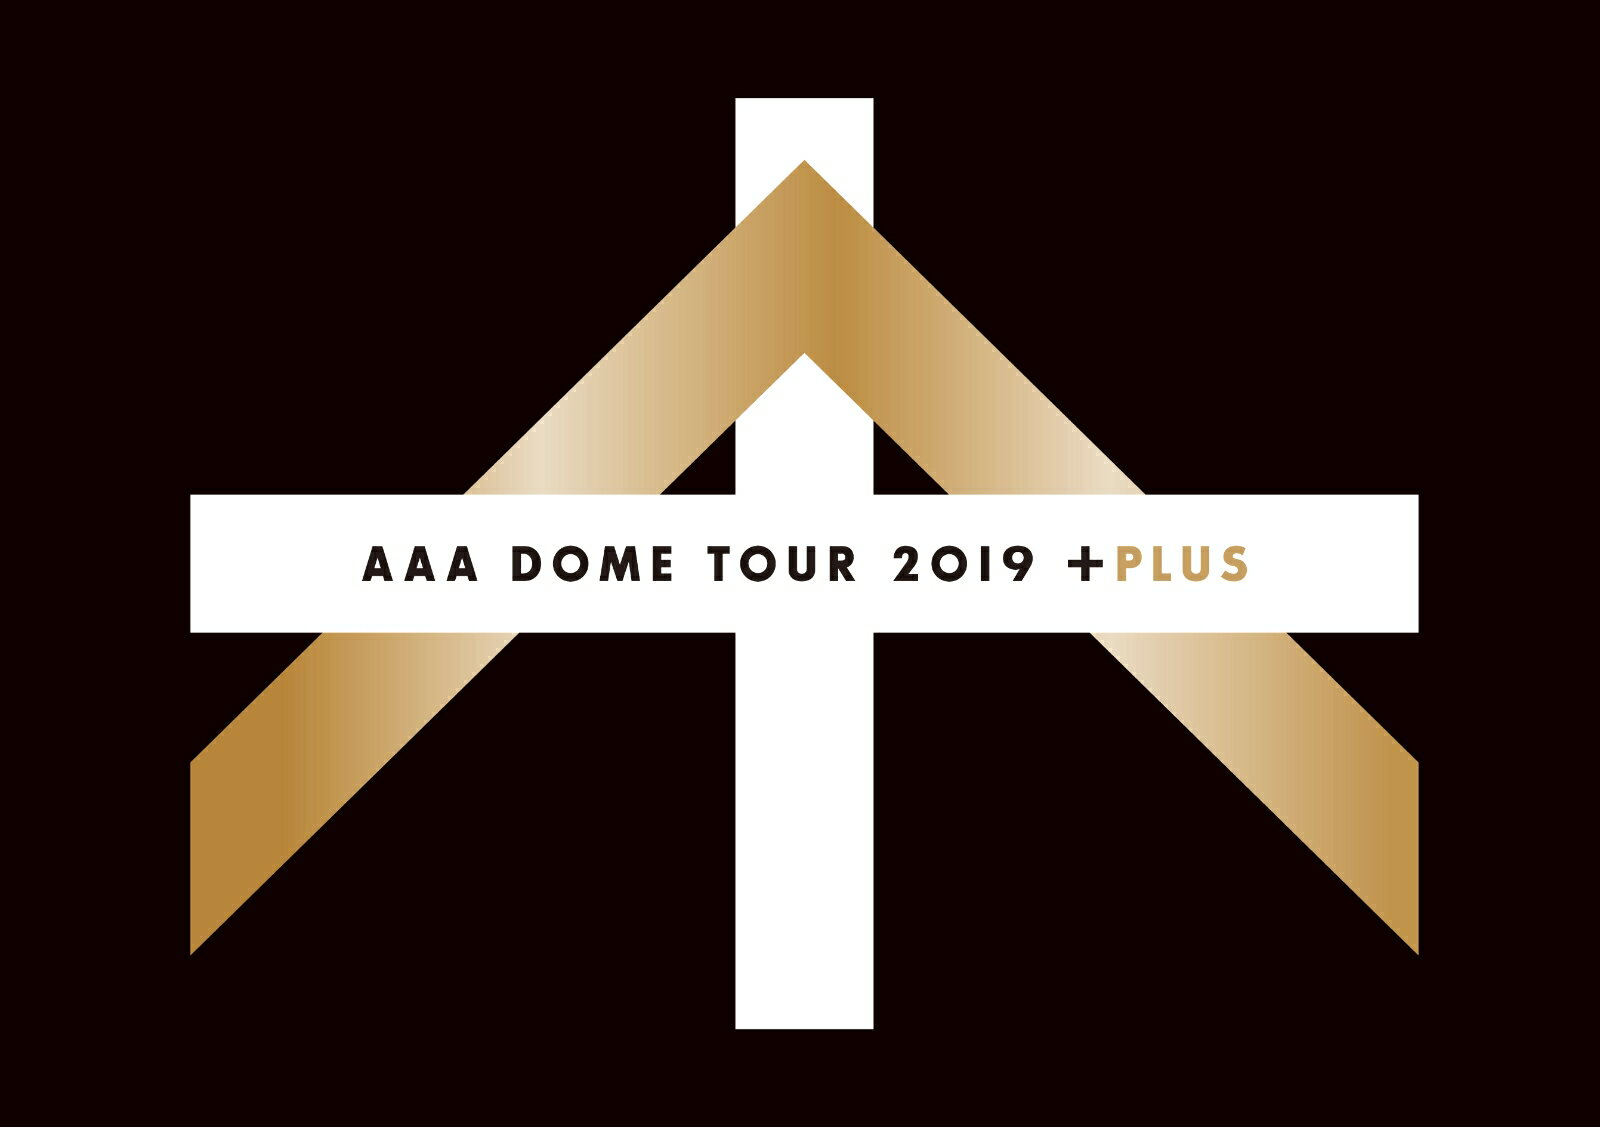 AAA DOME TOUR 2019 +PLUS (初回生産限定盤 Blu ray2枚組+グッズ) (スマプラ対応)【Blu-ray】